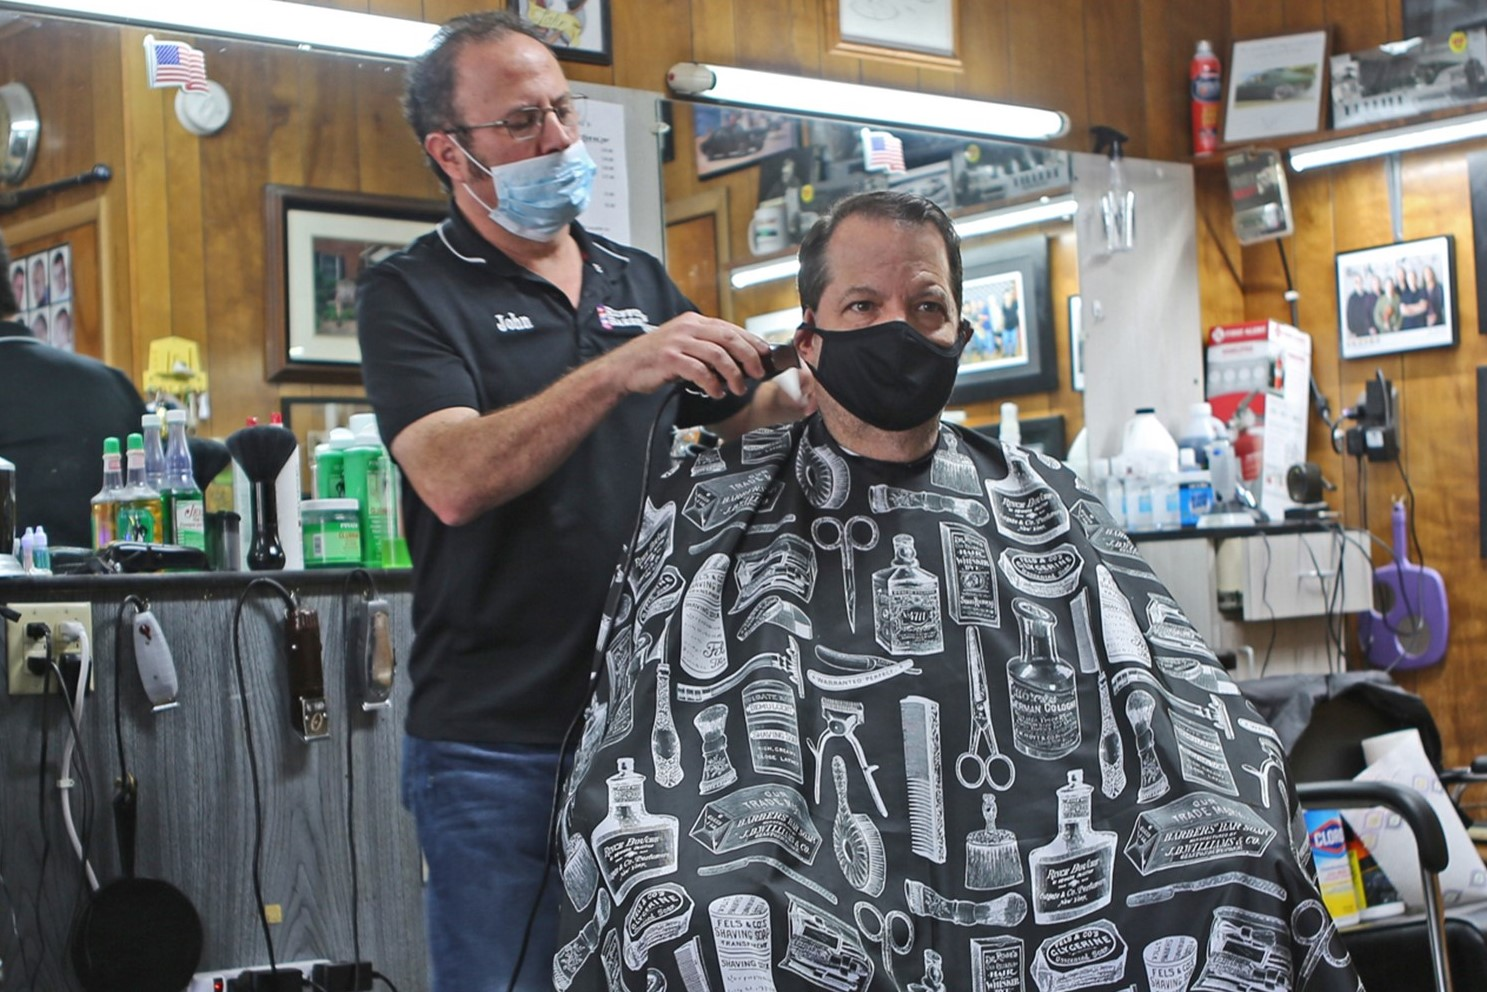 Barber Shop in West Grove Begins New Chapter in Its 61-Year History